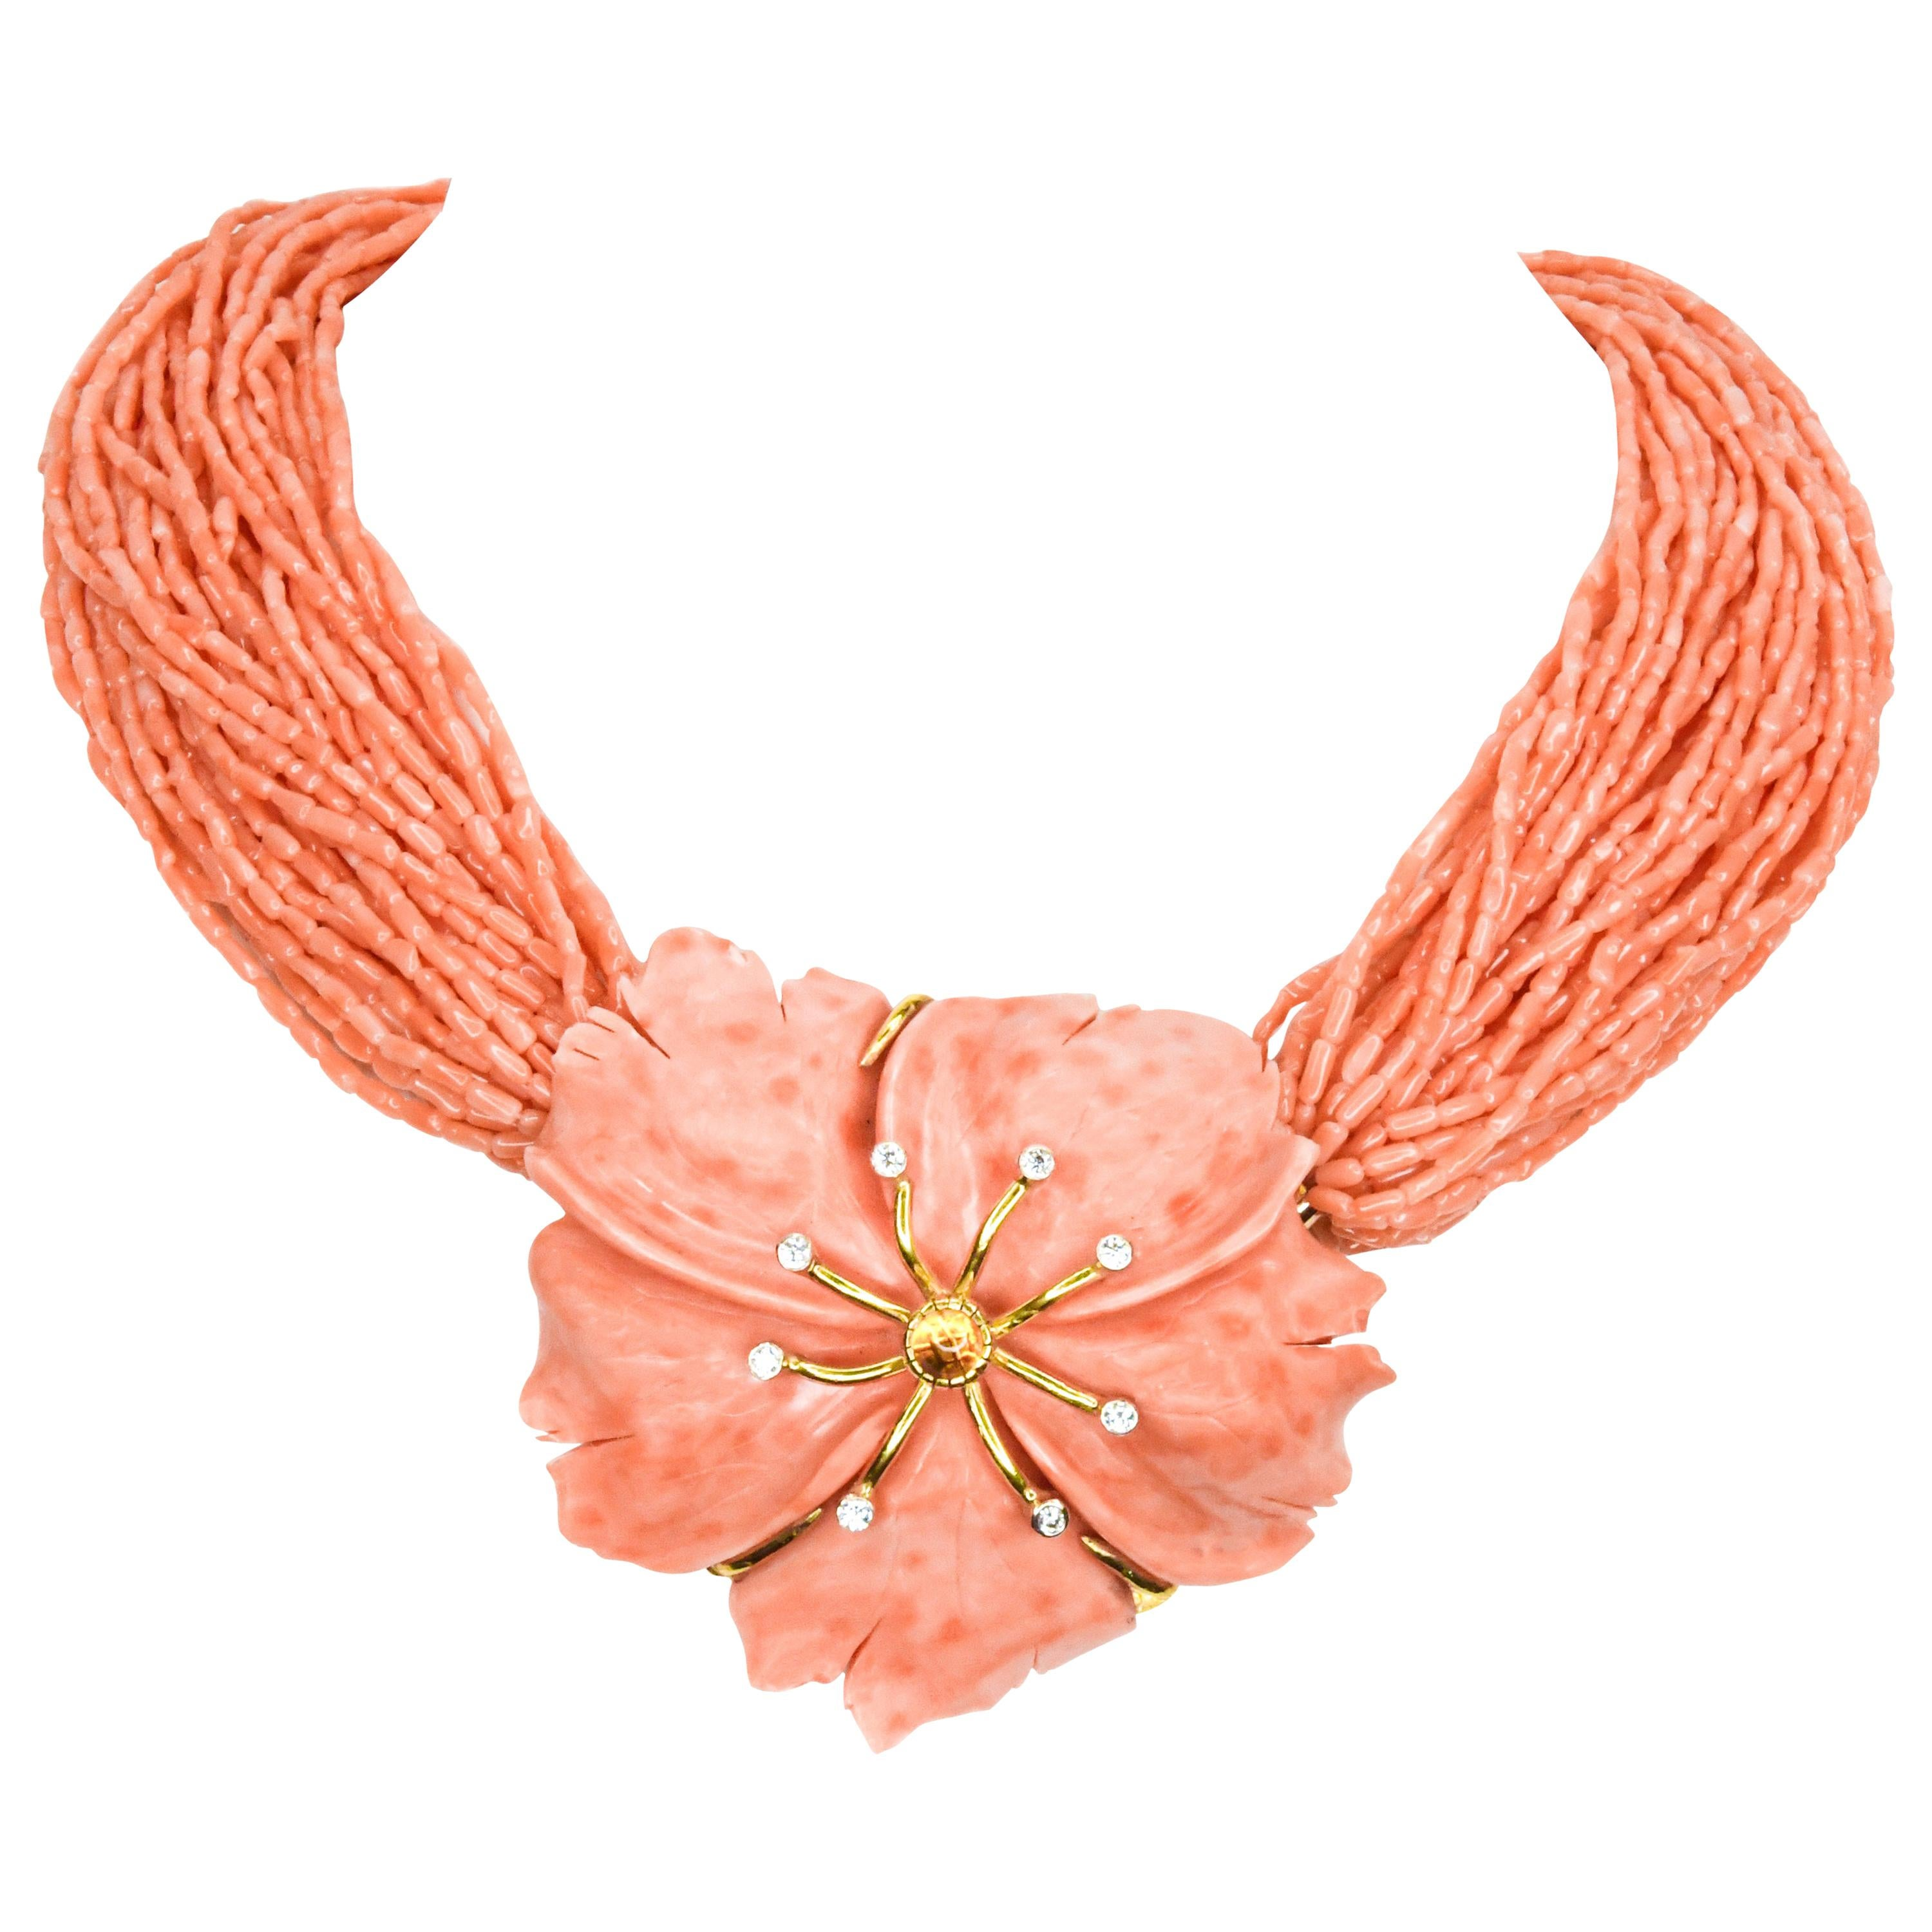 18 Karat Yellow Gold One of a Kind Coral and Diamond Flower MultiStrand Necklace